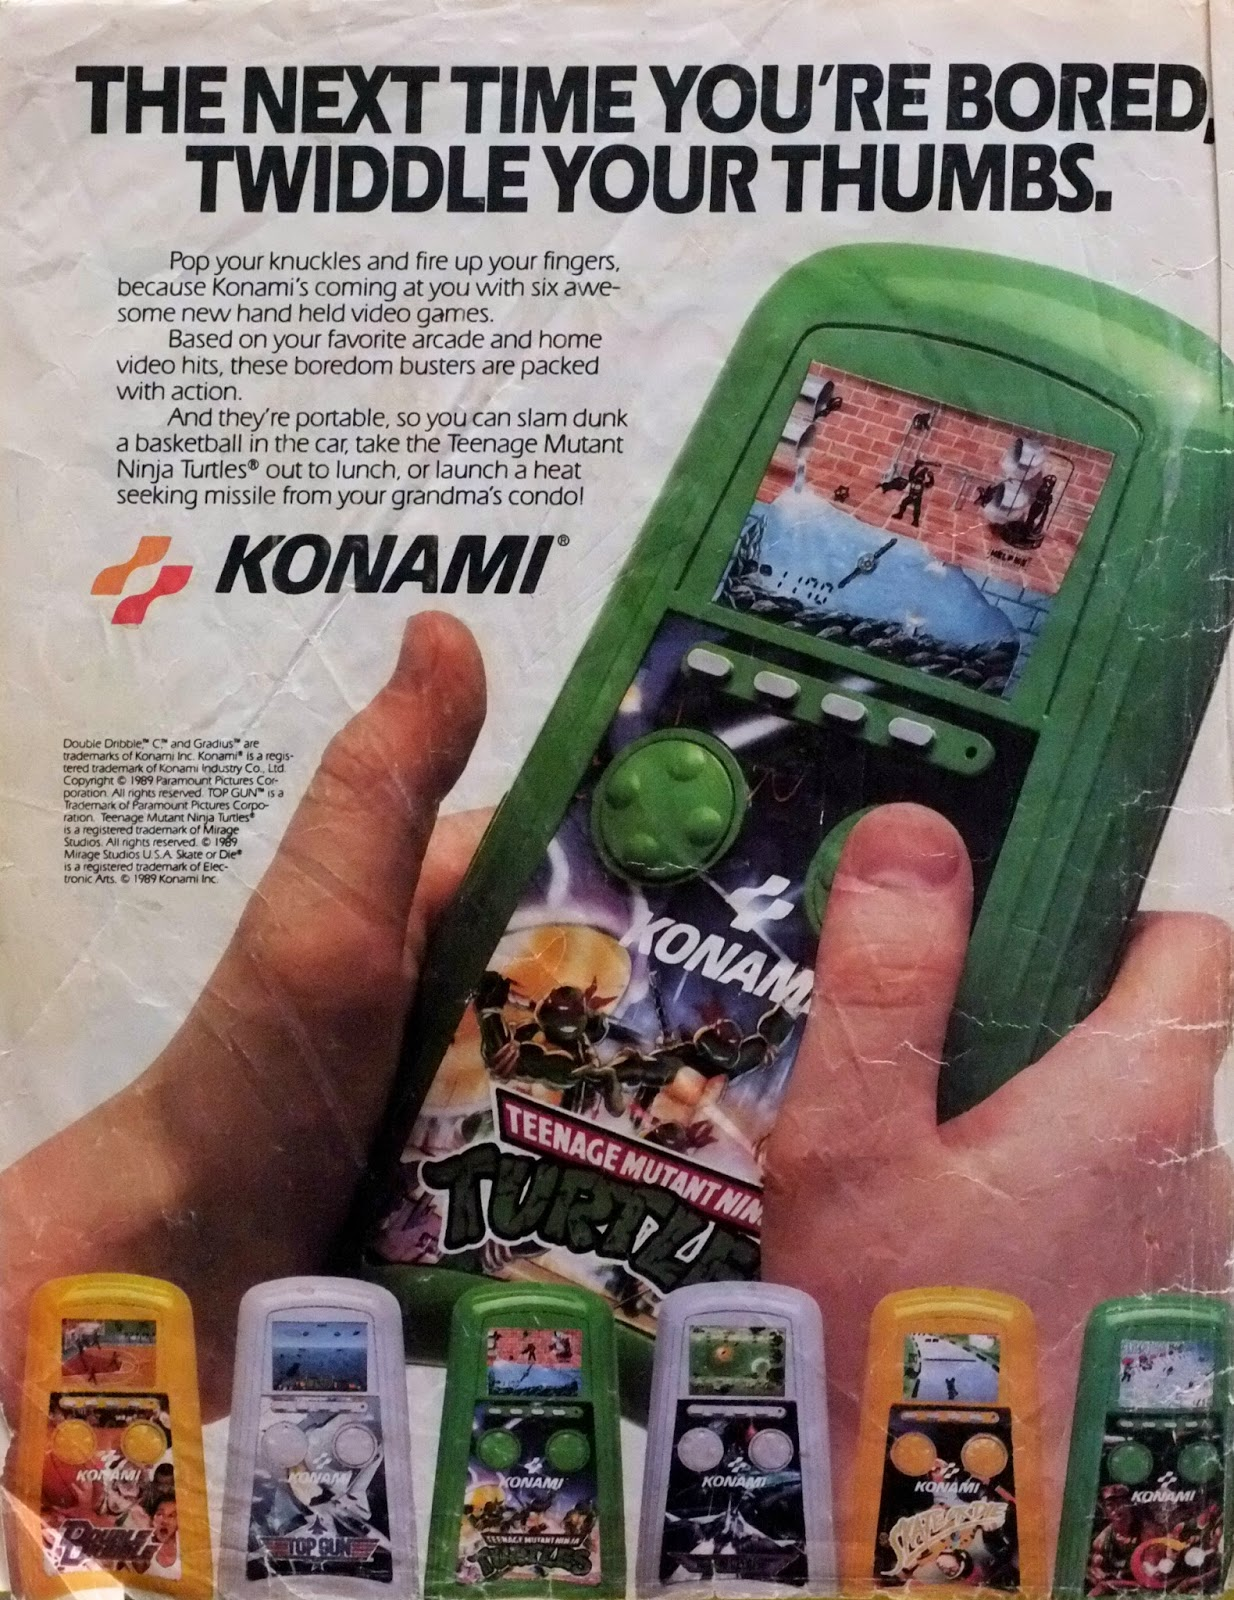 Konami portable video game devices advertisement